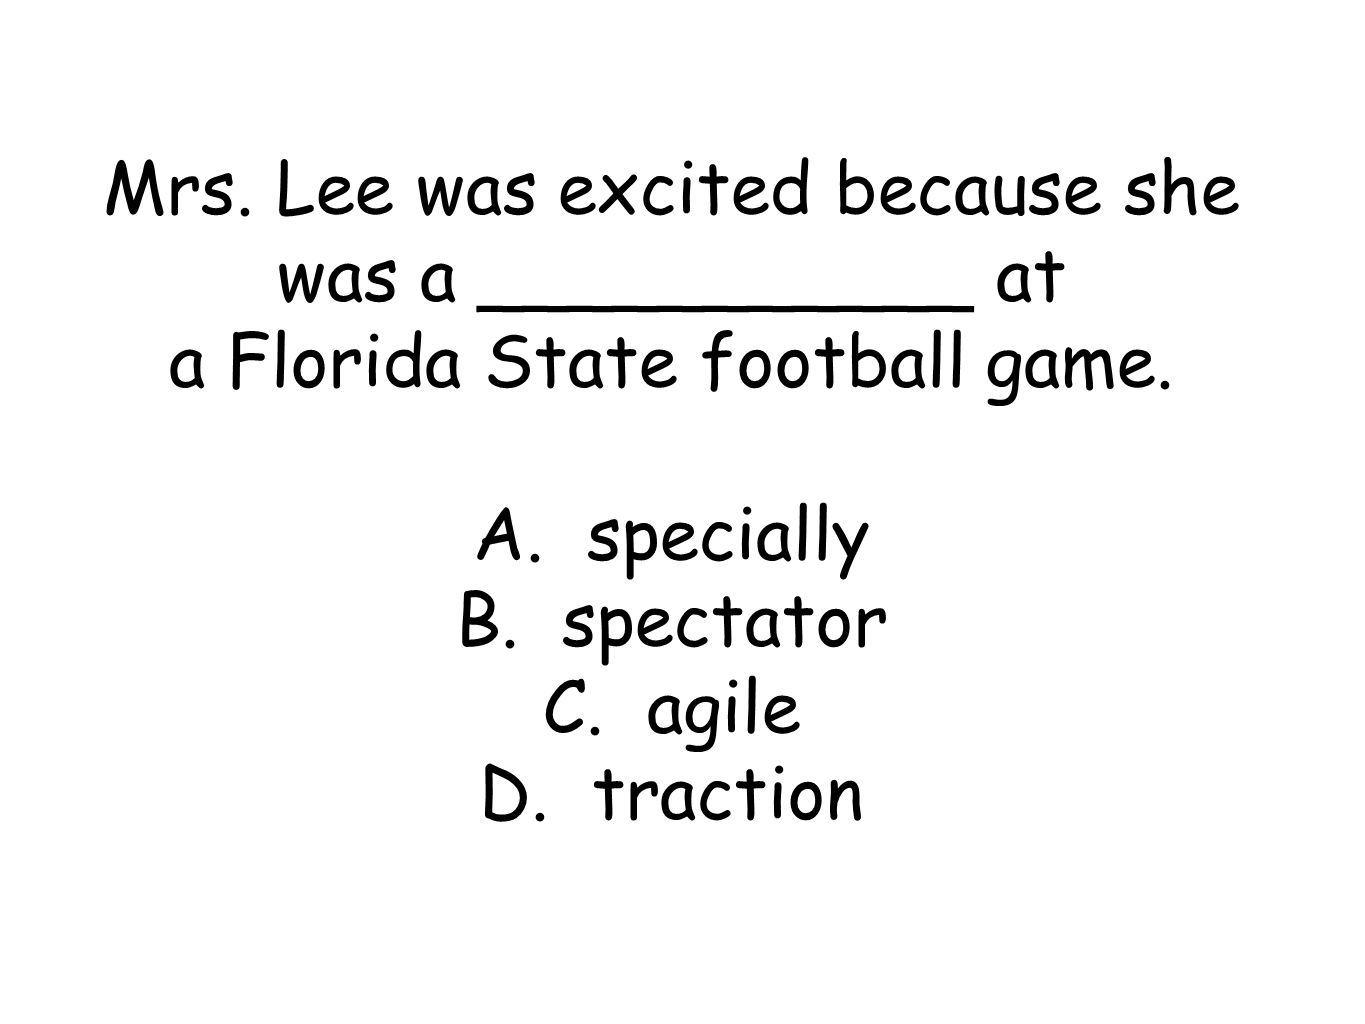 Mrs. Lee was excited because she was a ___________ at a Florida State football game.